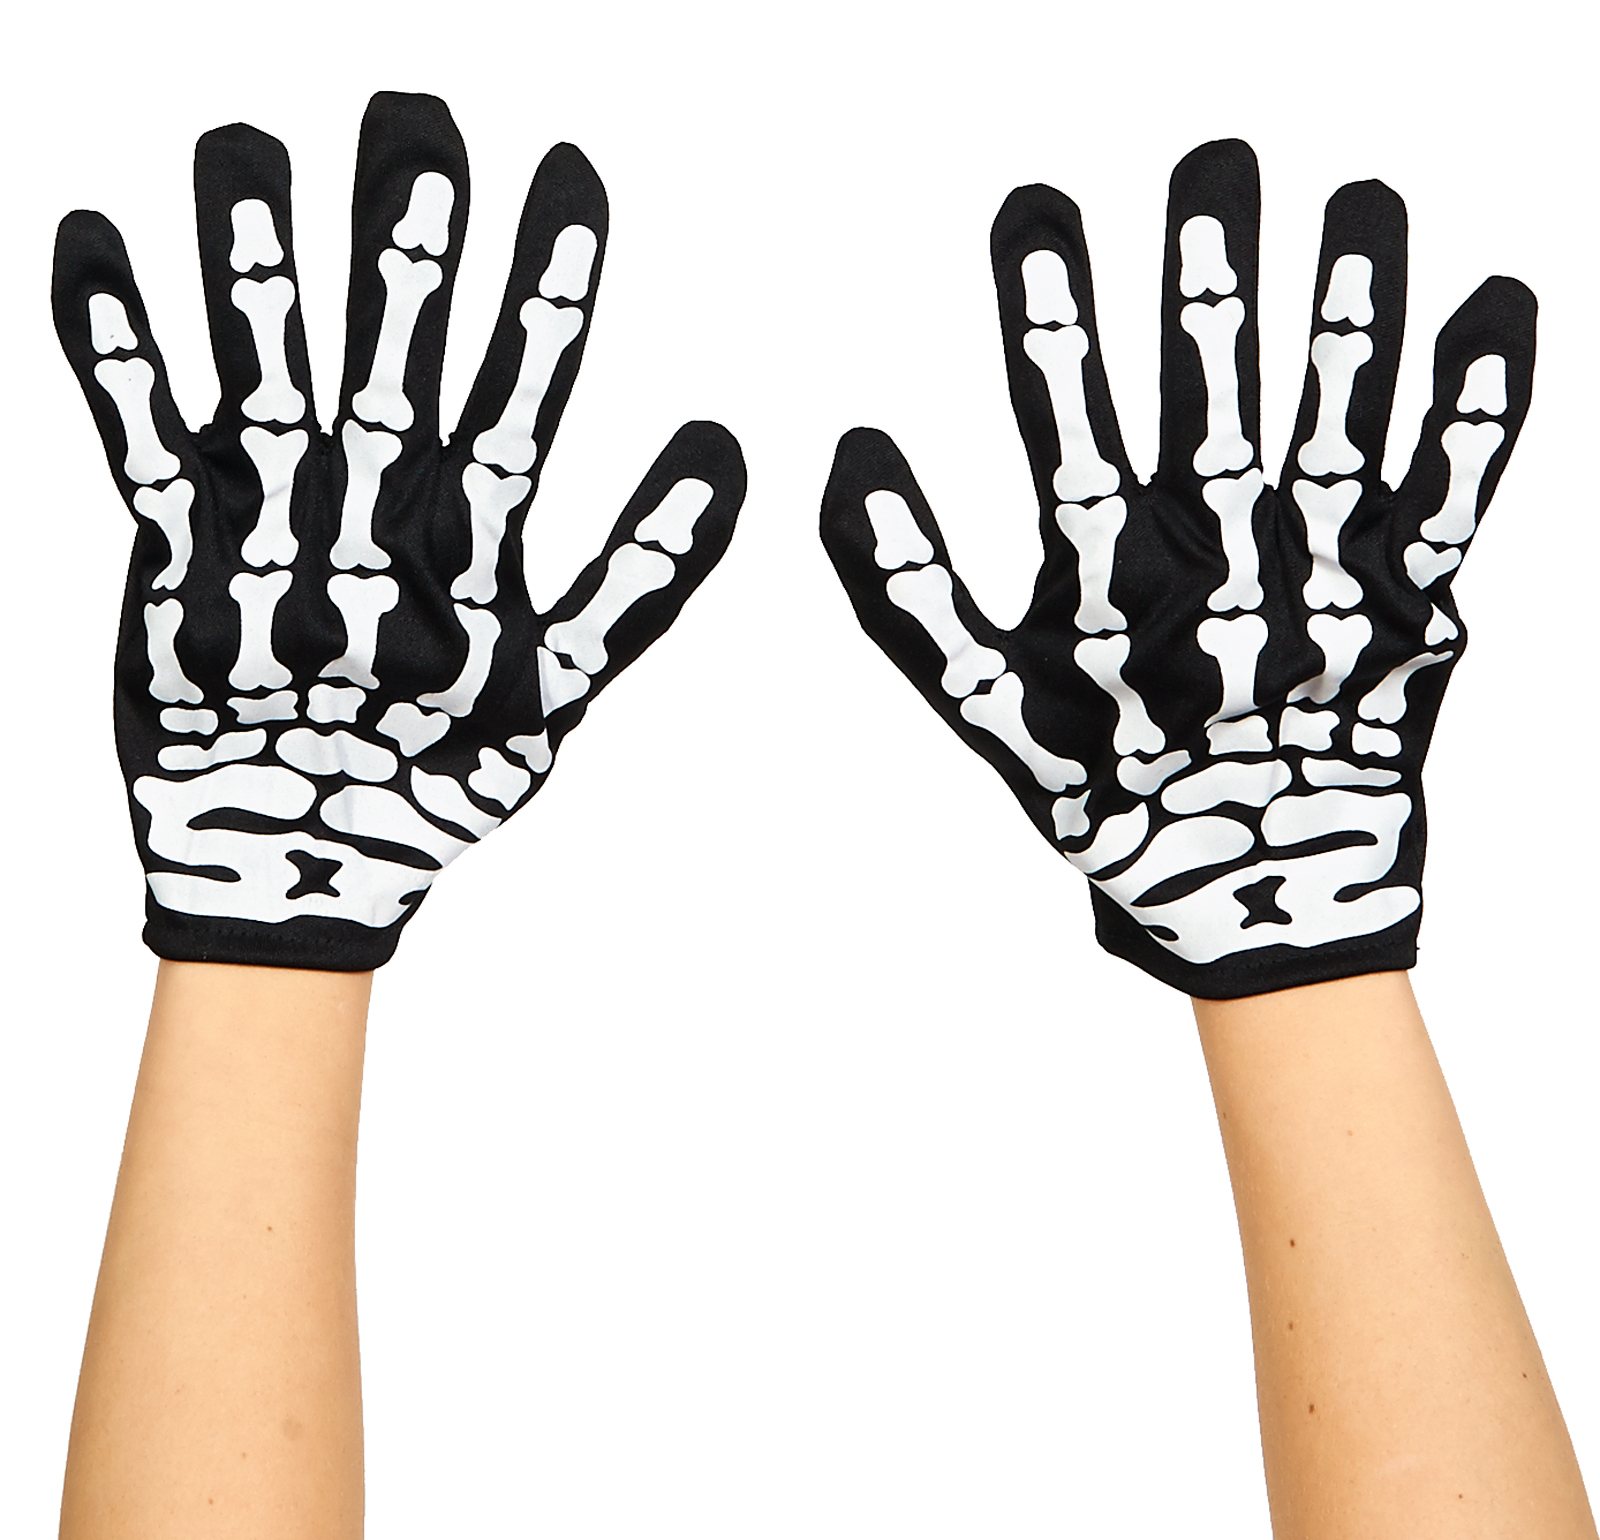 http://www.partybell.com/p-2133-glove-skeleton.aspx